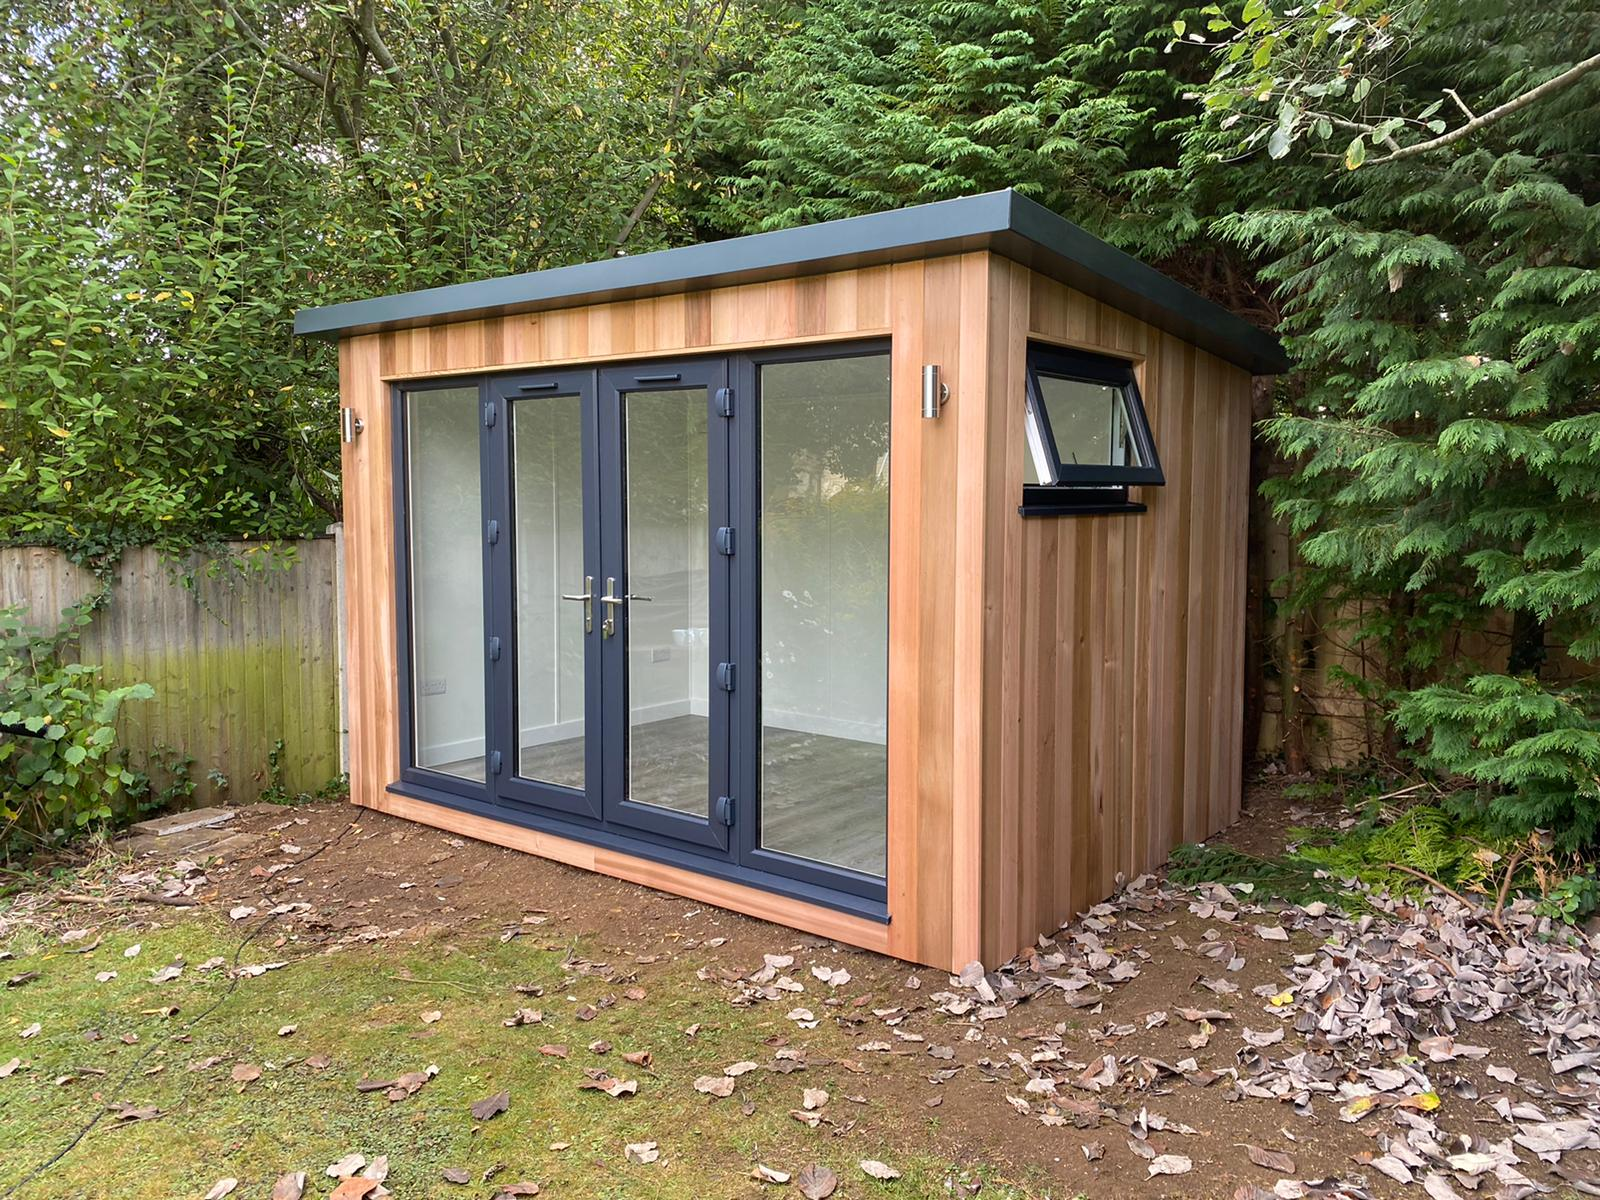 3.5m x 2.4m Contemporary Overhang with 1m x 600mm opening window